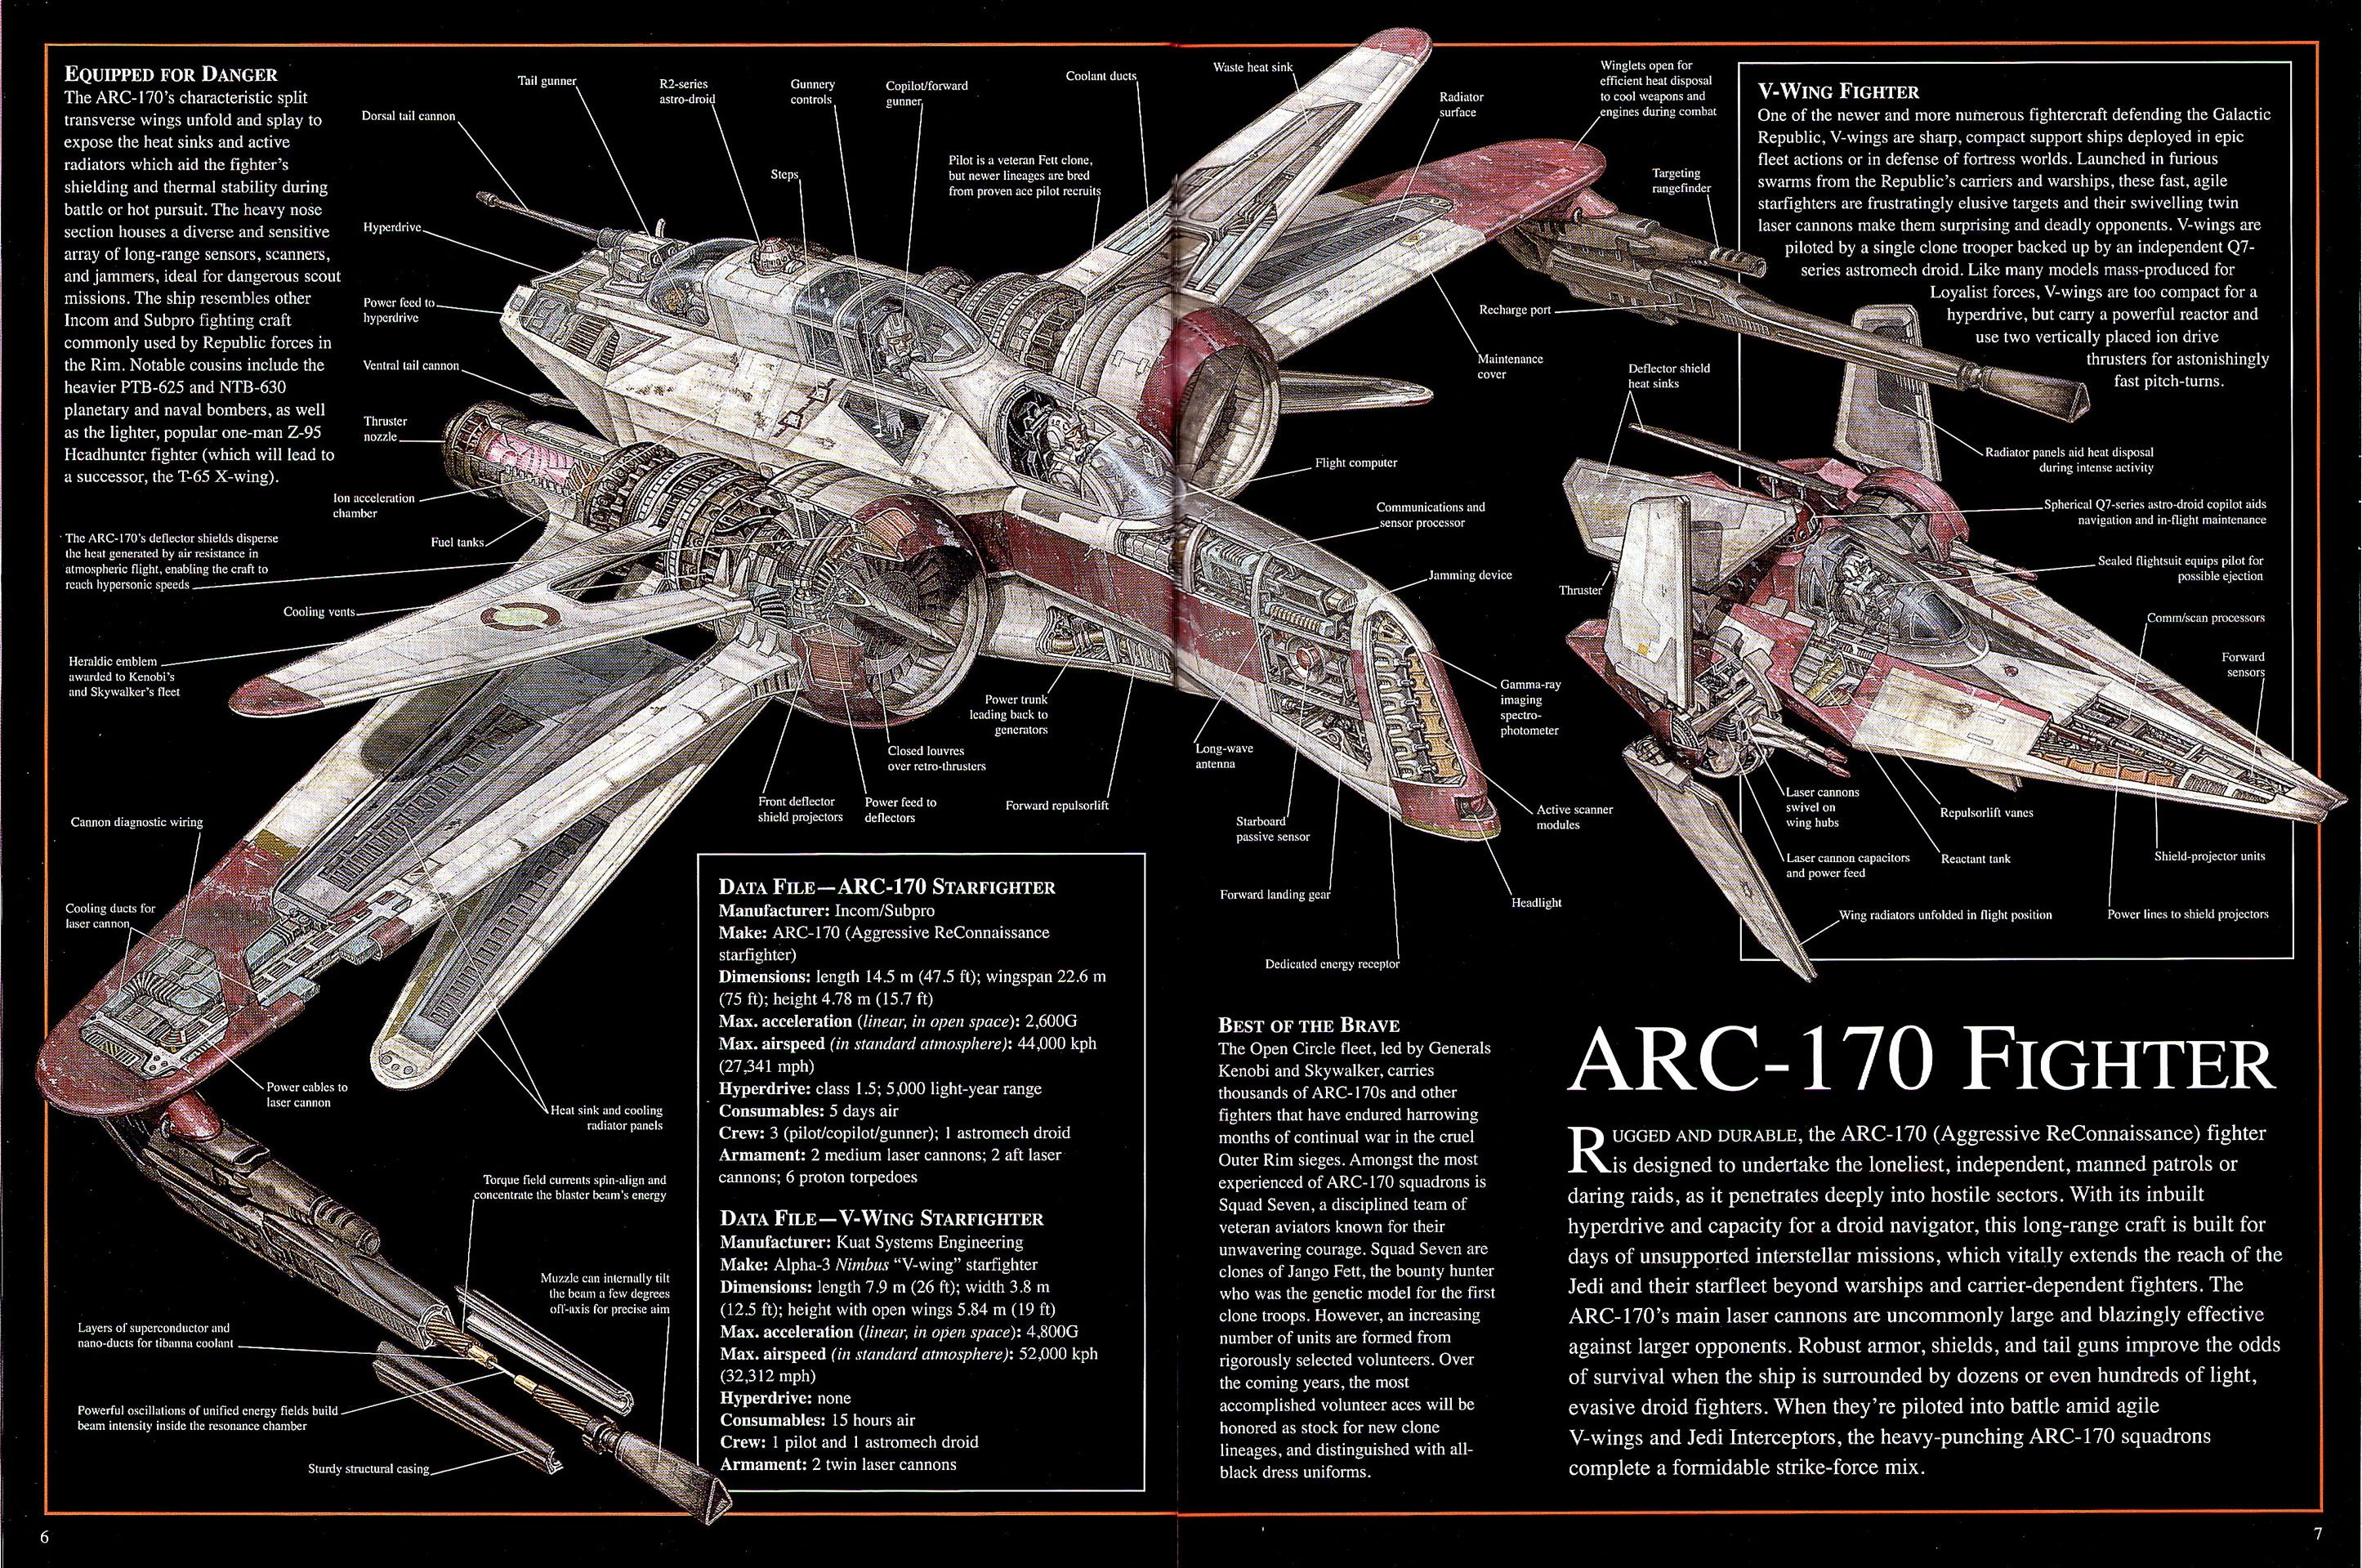 star wars the force awakens incredible cross sections ...